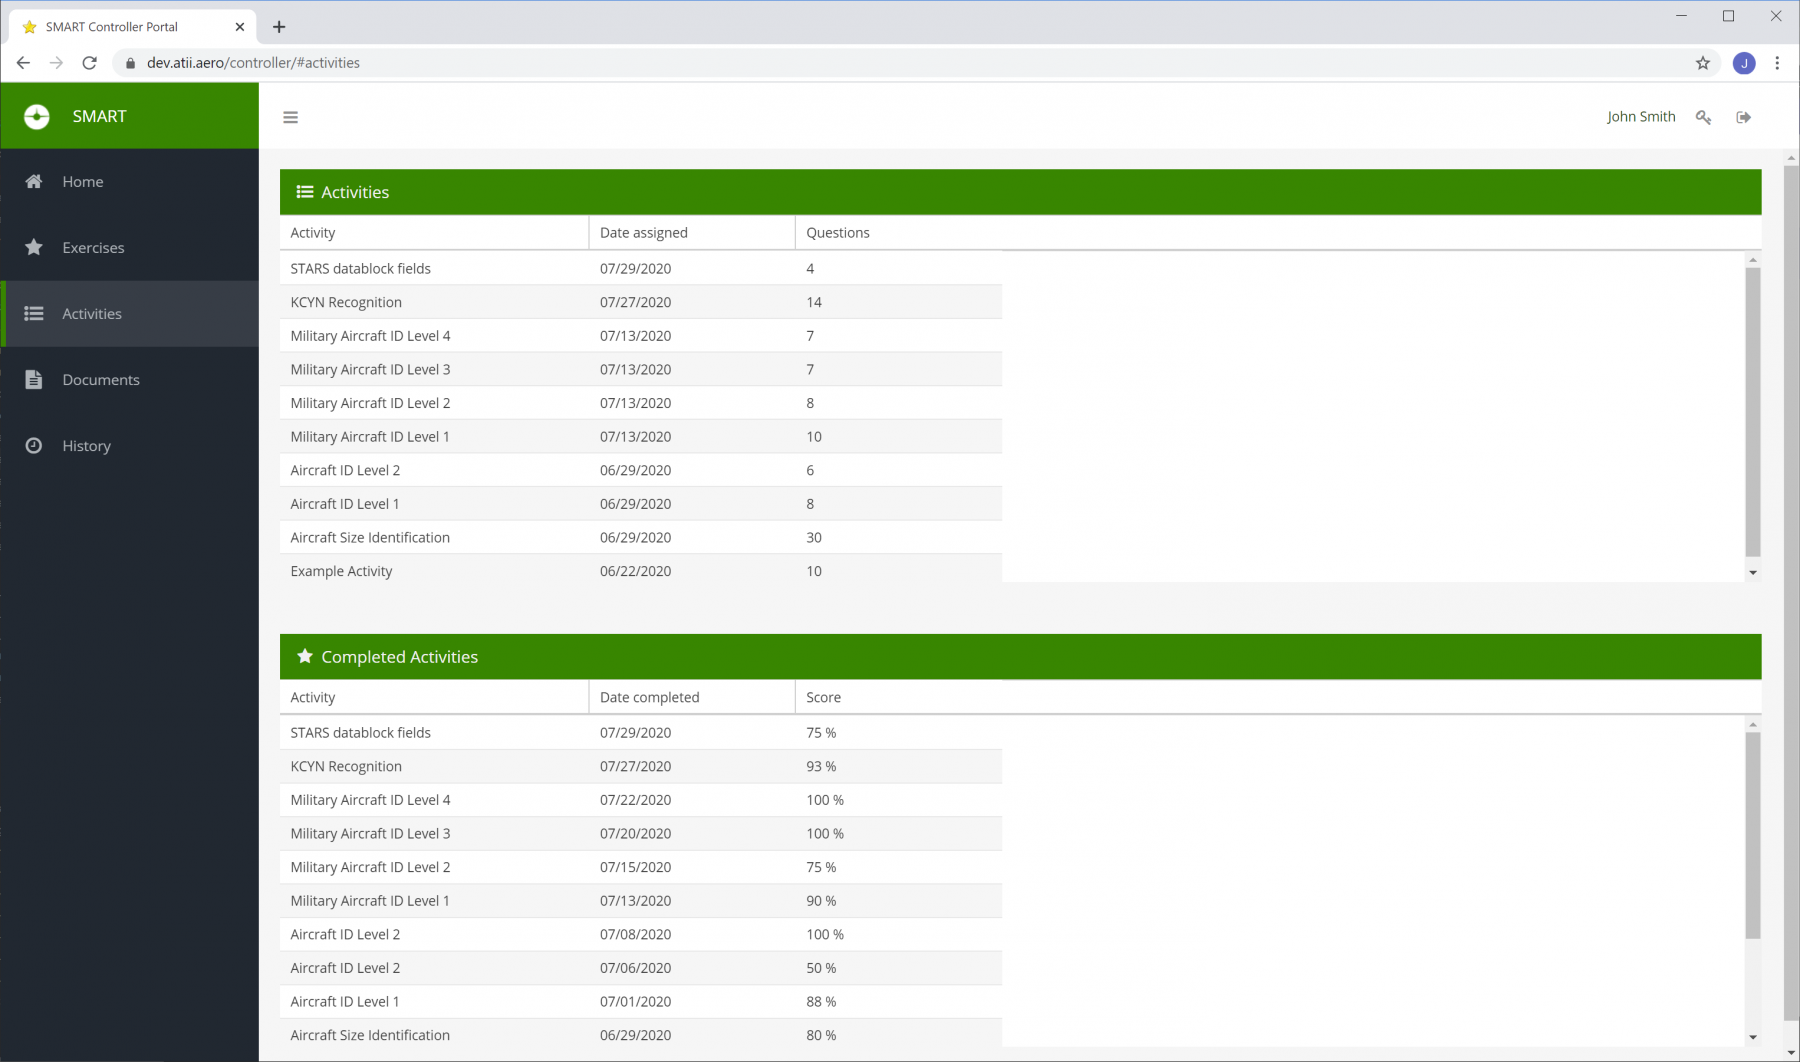 SMART Student Portal - Activities and Quizzes